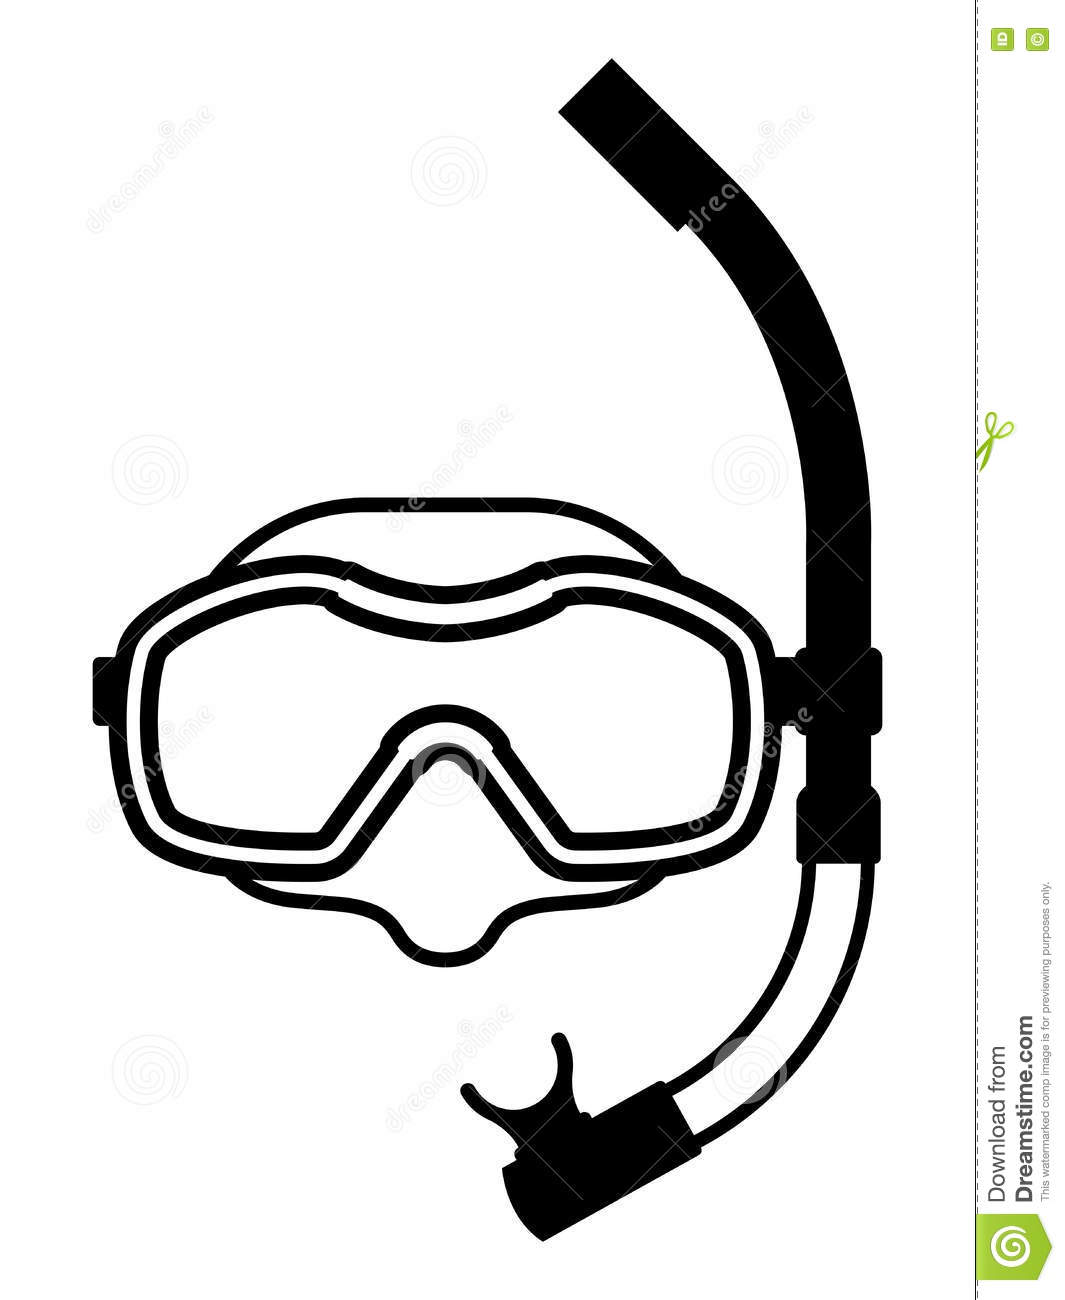 Snorkeling Equipment Black And White Icon Stock Vector